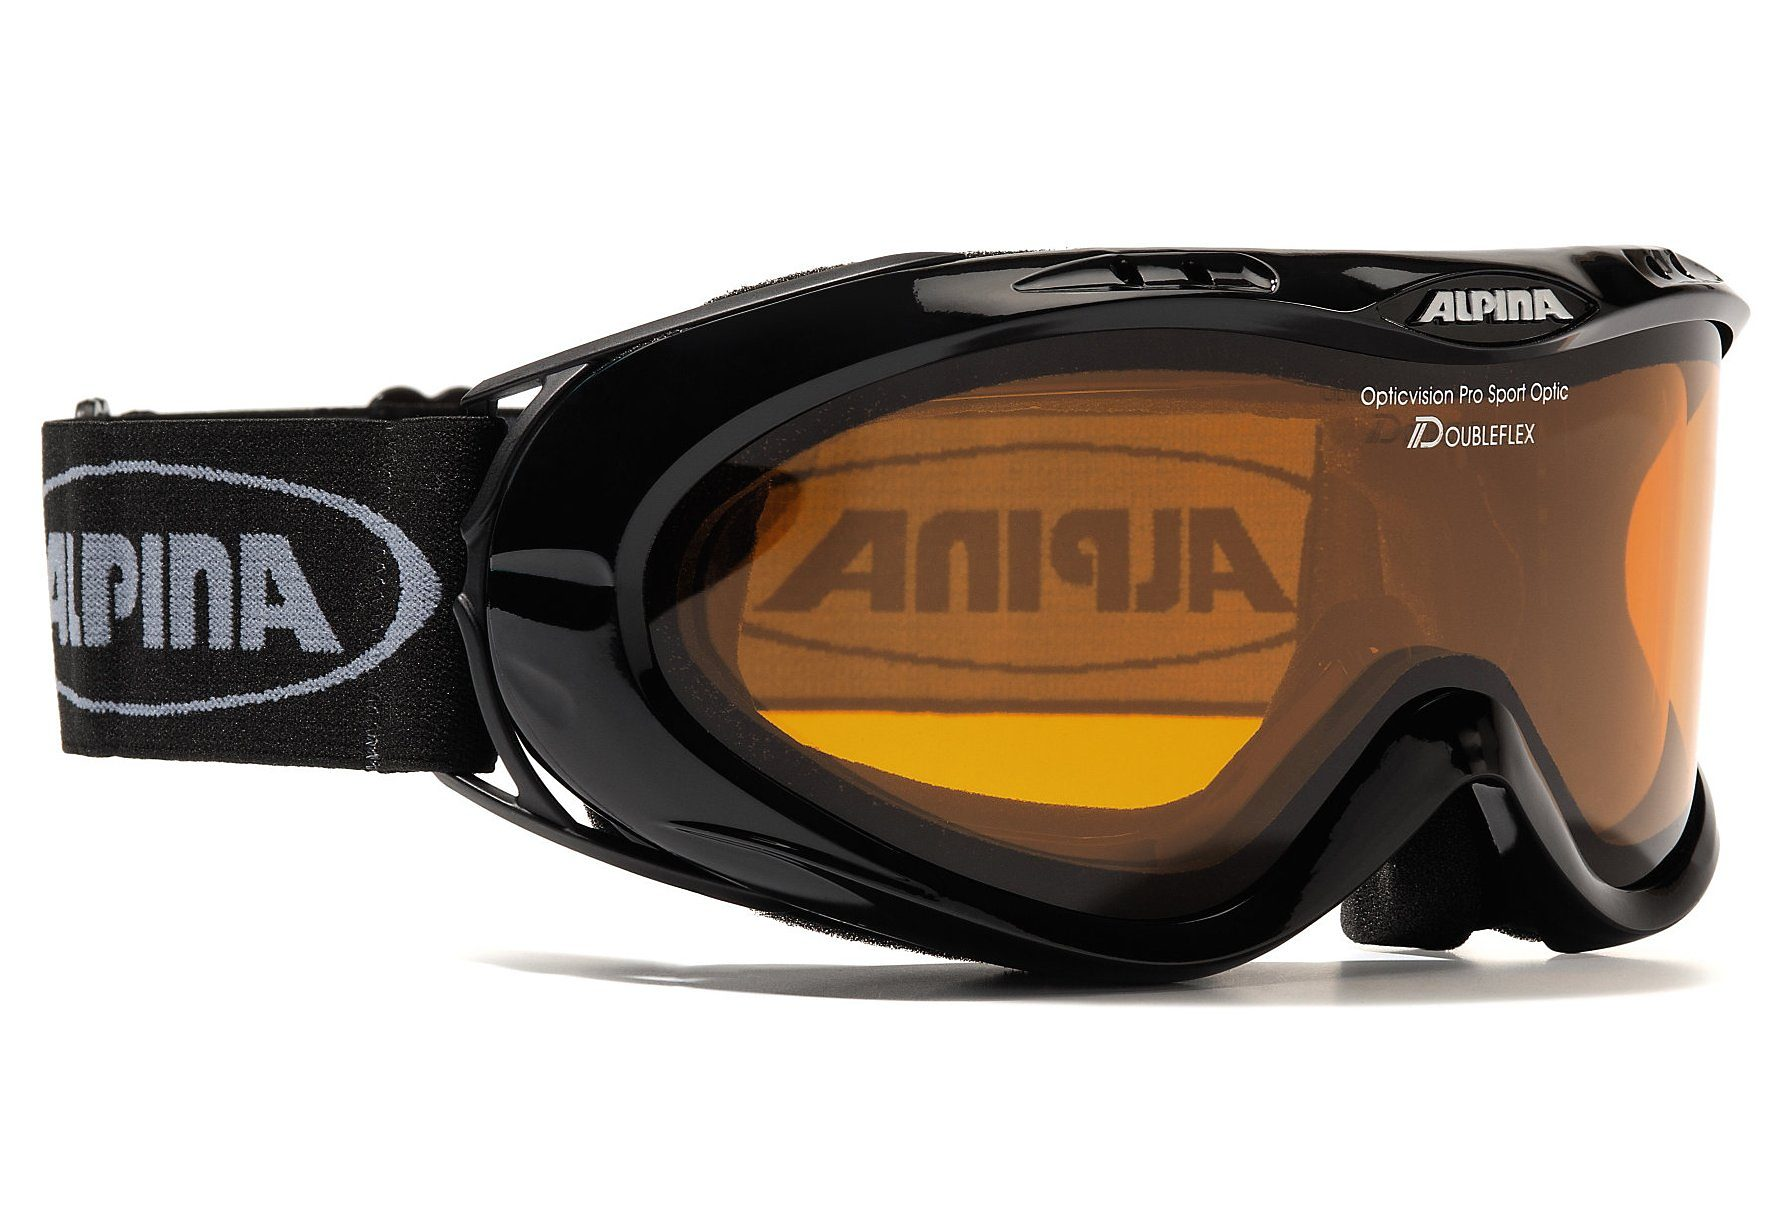 Skibrille, schwarz, für Brillenträger, Alpina, »Opticvision«, Made in Germany